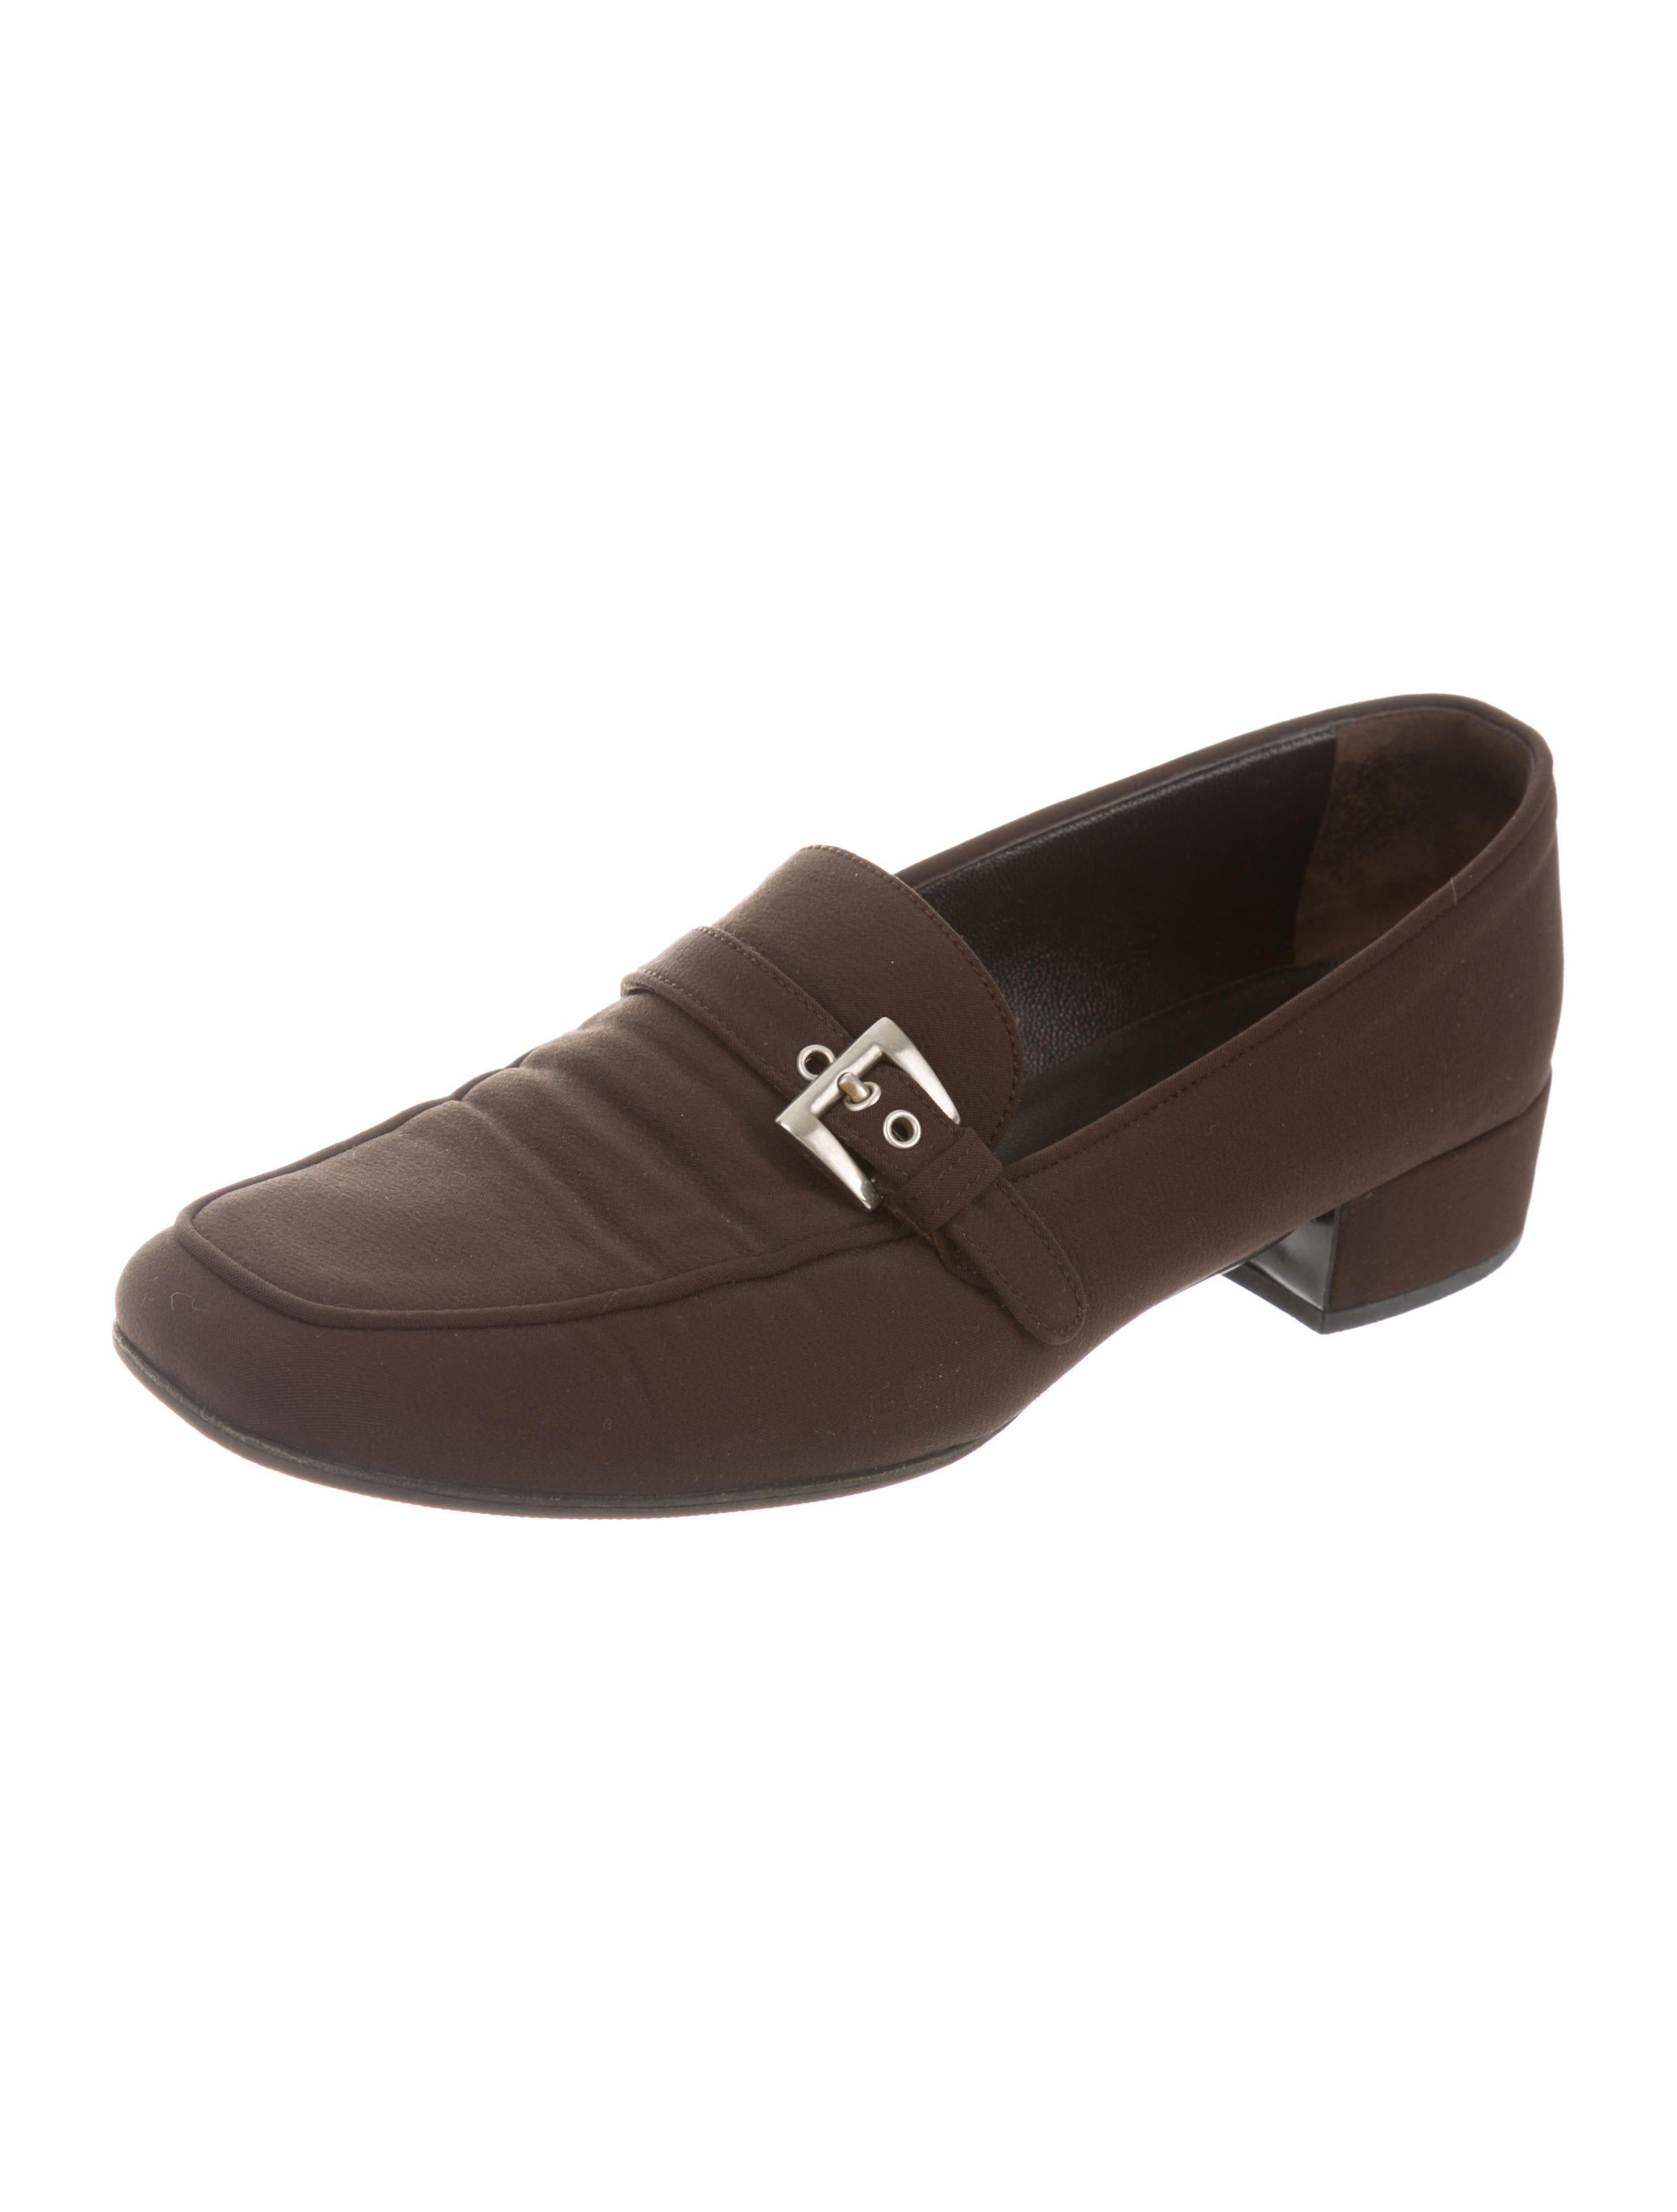 Prada Buckle-Accented Square-Toe Loafers discount online fast delivery cheap price discount browse cheap sale reliable wDV54CnigI